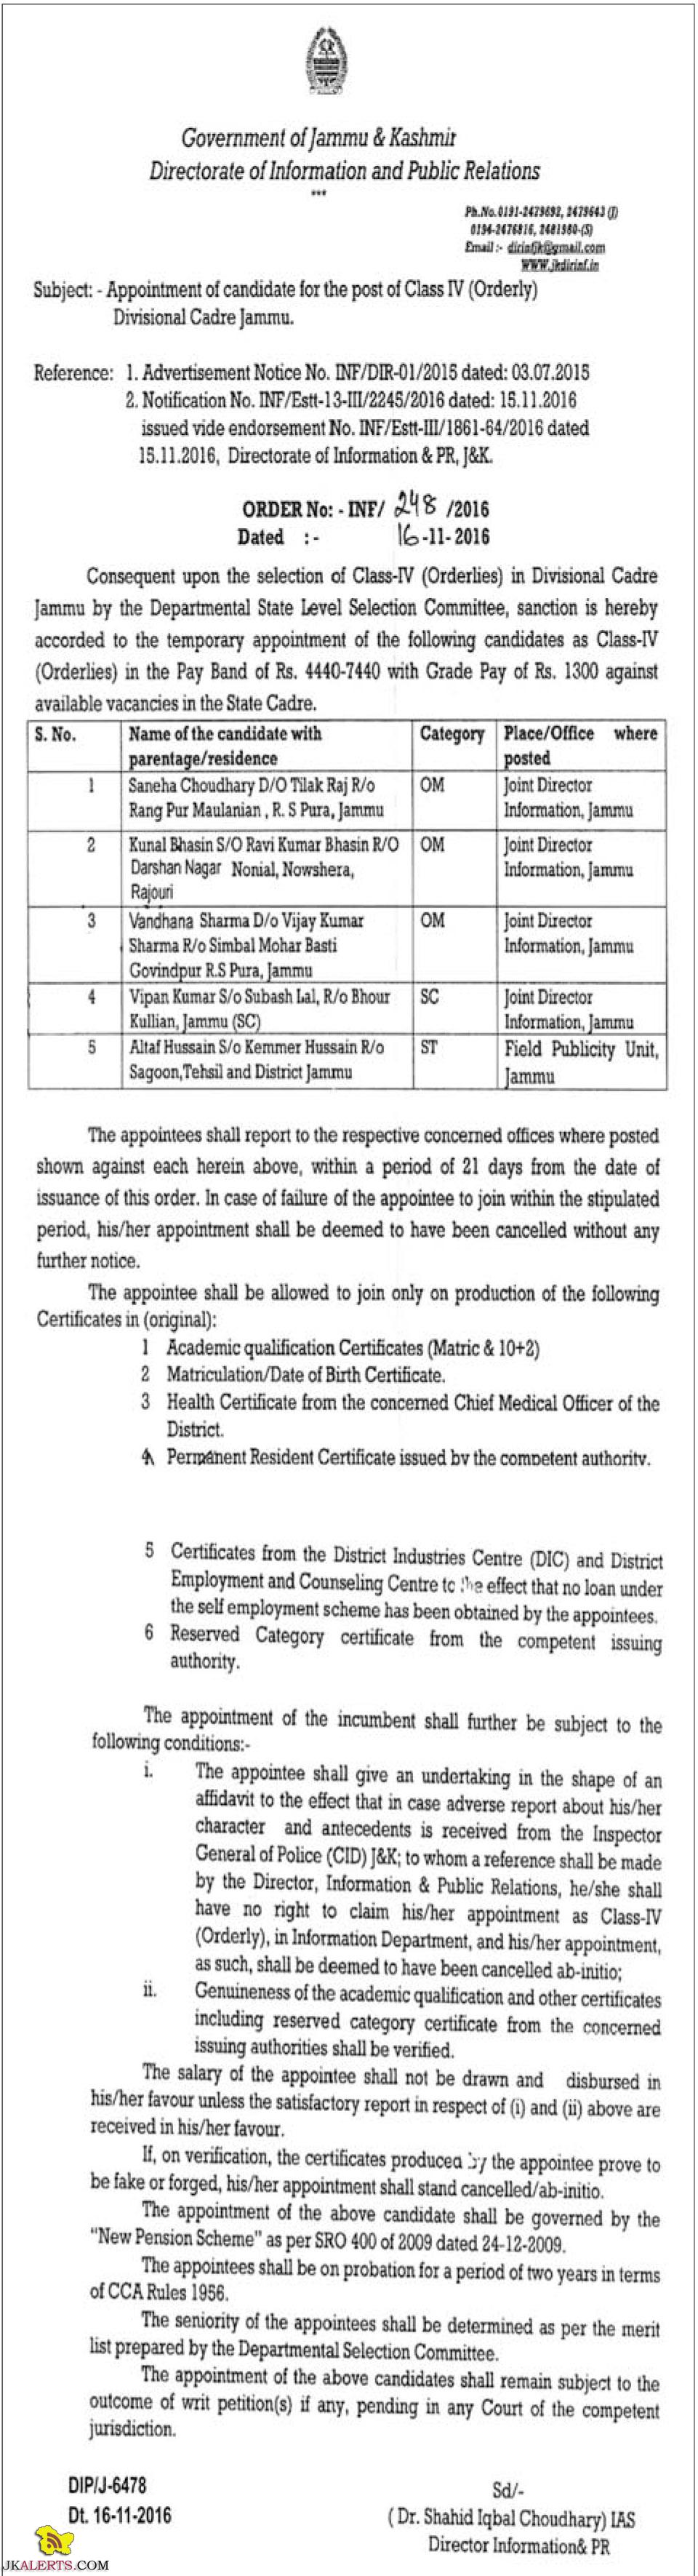 Appointment of candidate for the post of Class IV (Orderly) Divisional Cadre Jammu